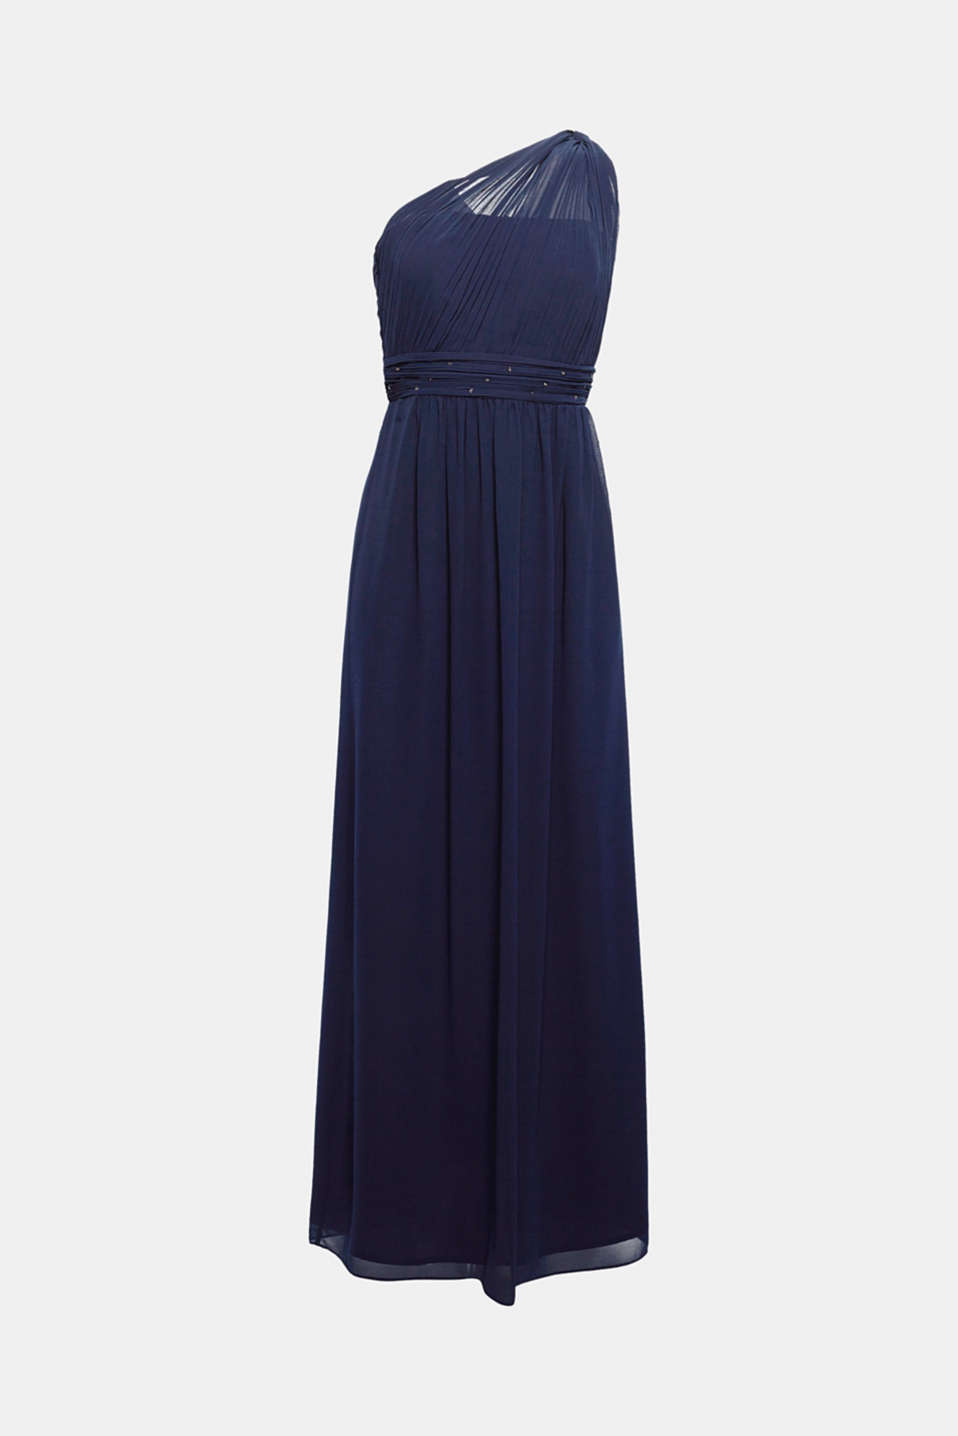 Strut your stuff: this one shoulder maxi dress has pleats and glittery rhinestones!